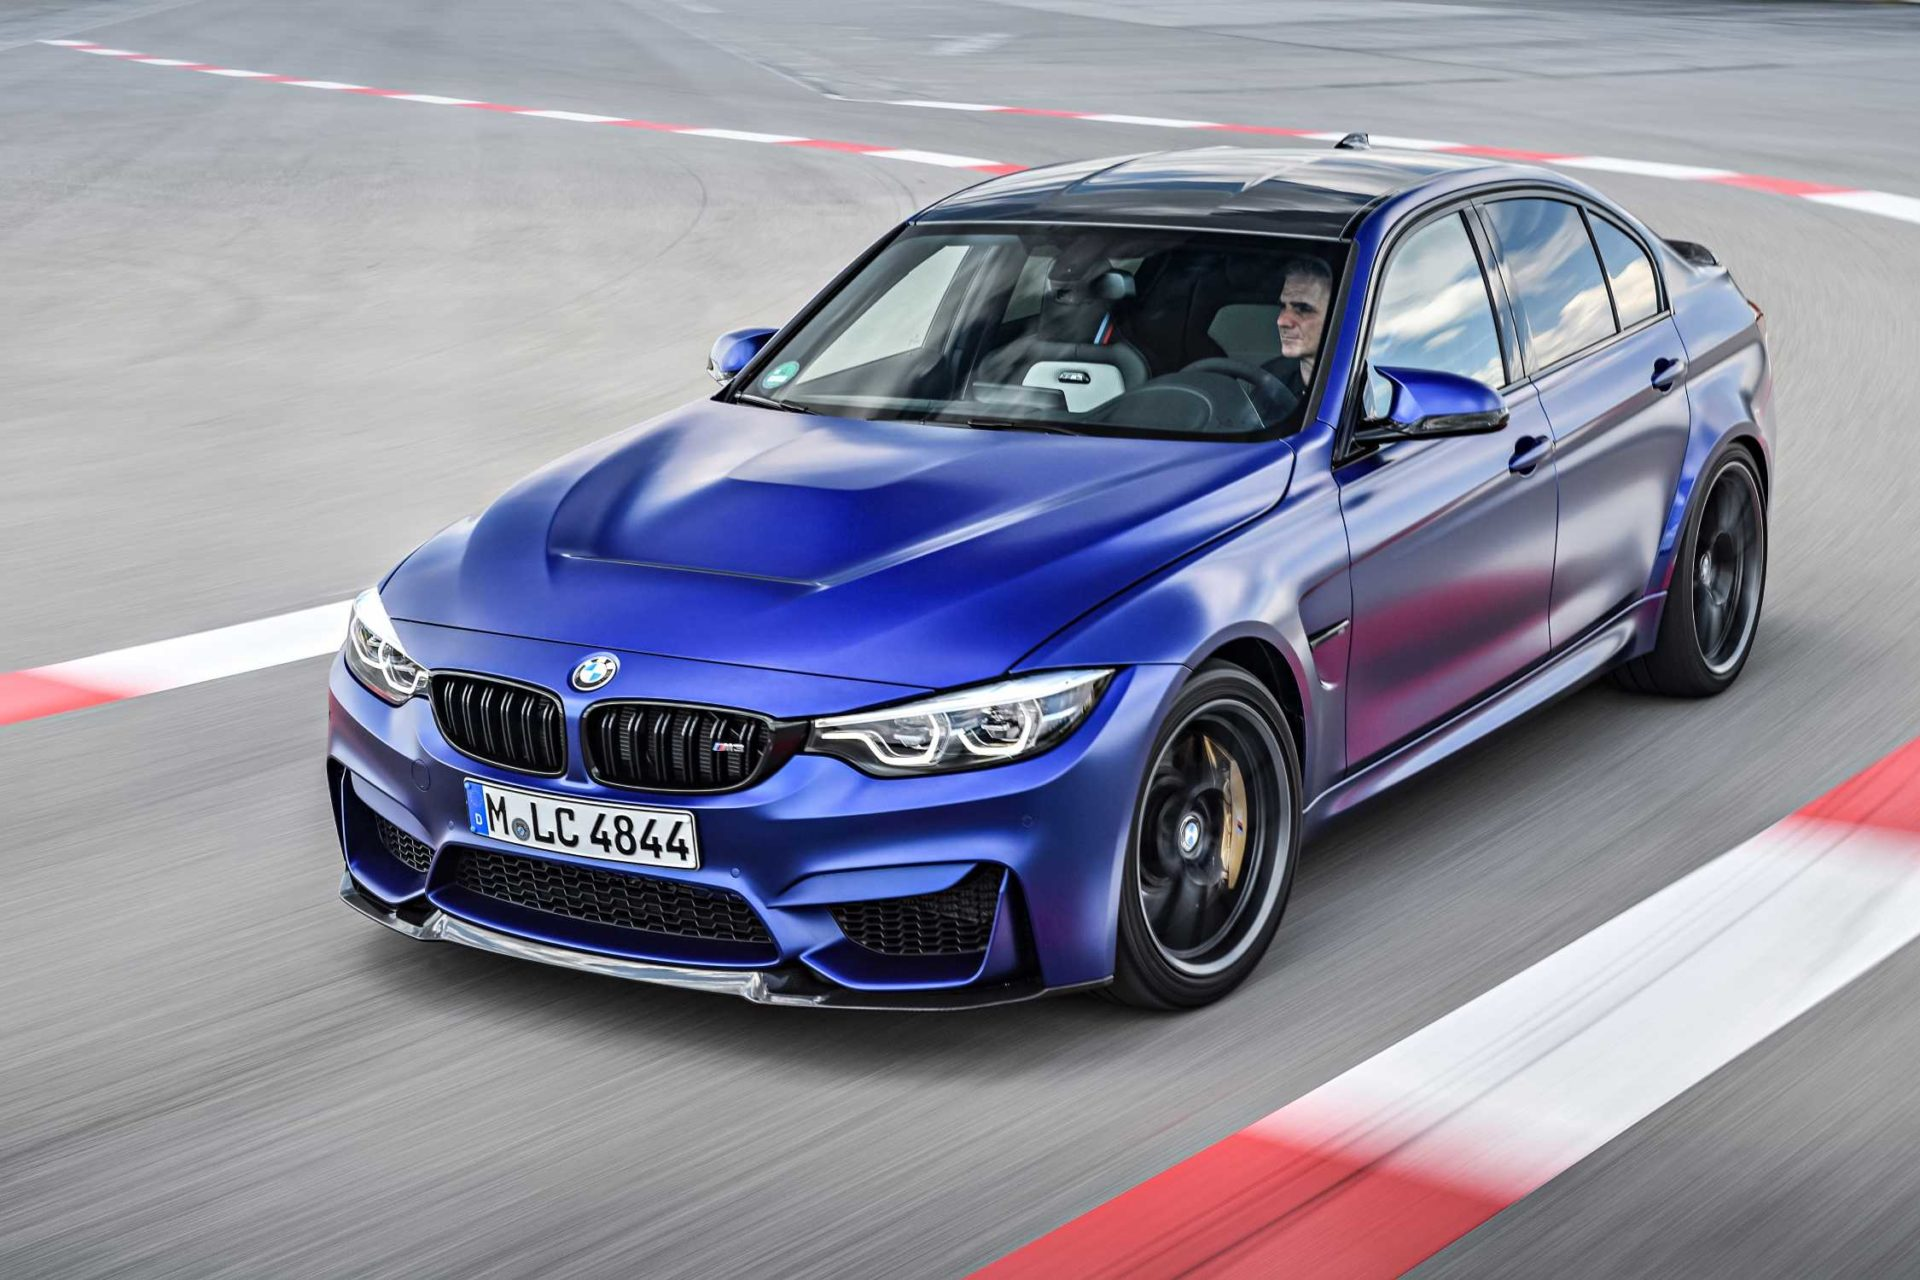 Best Selling Cars 2020.2020 Bmw M3 Gets All Wheel Drive And Up To 510 Hp Motor